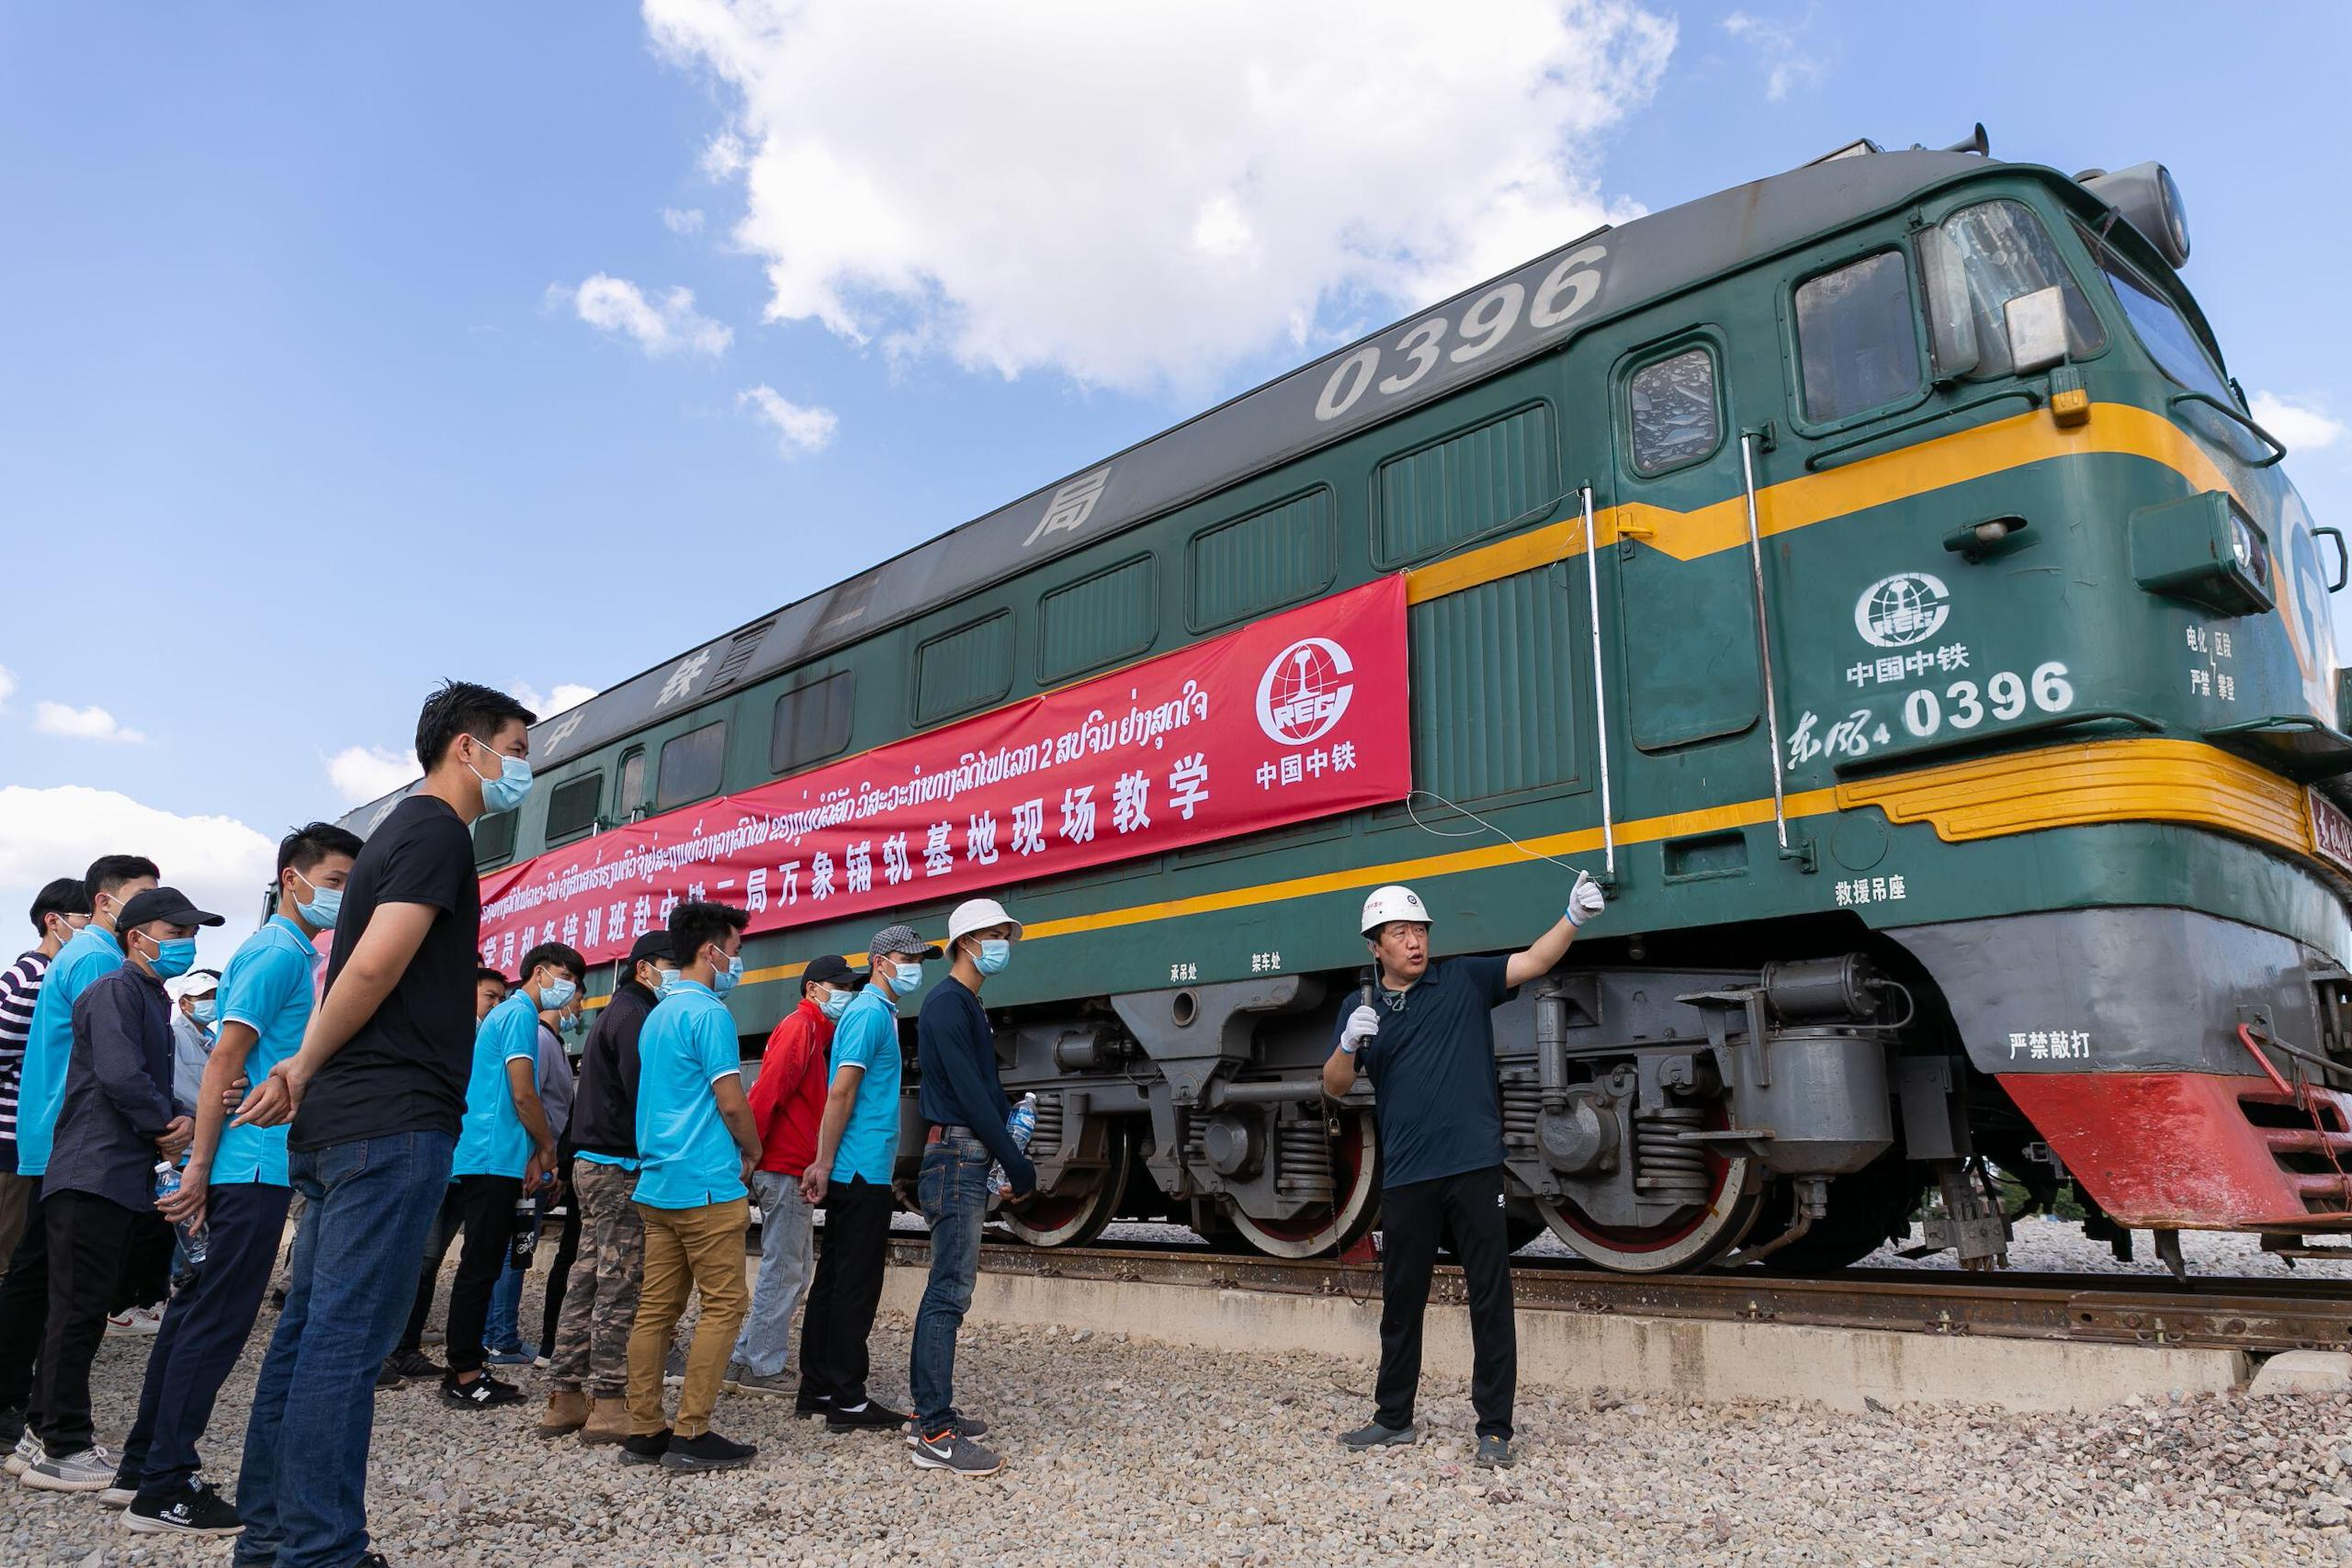 Training engineers on the China–Laos railway. China's new guidelines recommend 'international green rules and standards' be followed where host country rules are lacking. (Image: Alamy)